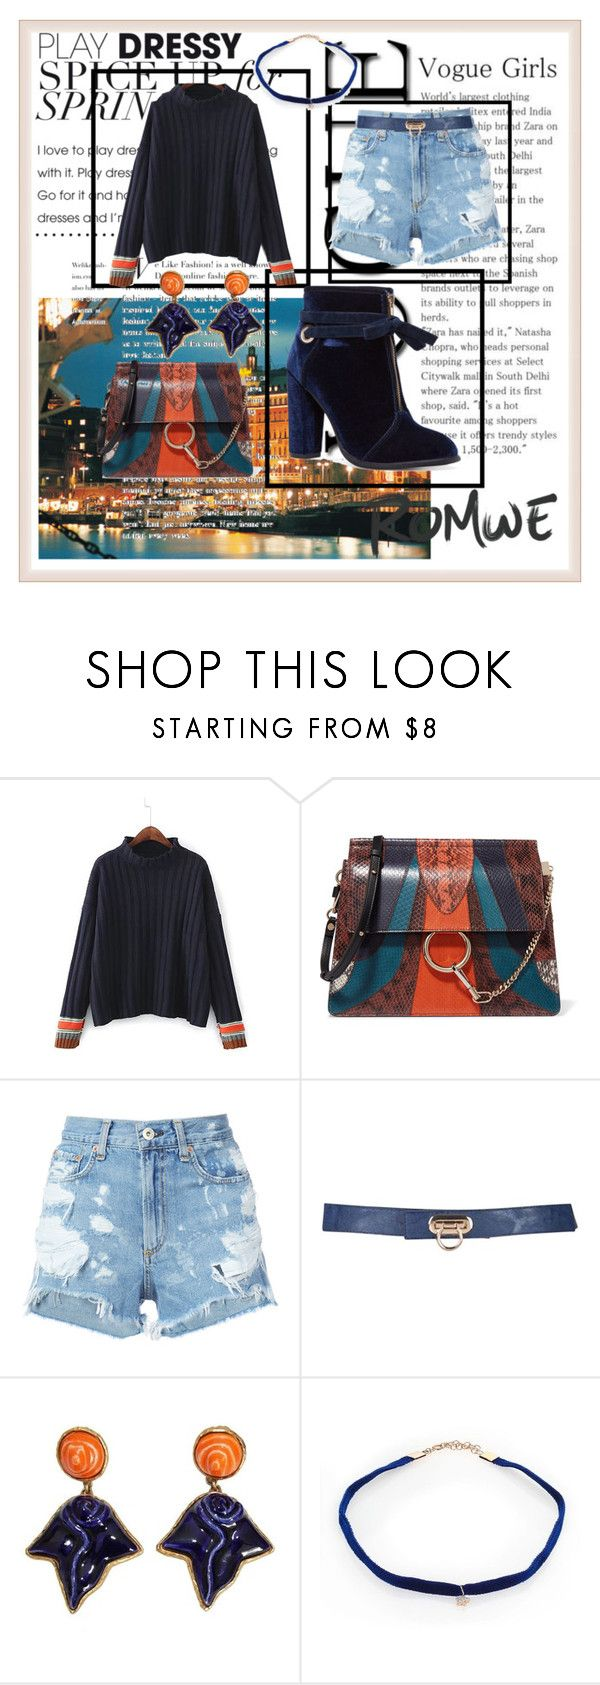 """""""ROMWE CONTEST"""" by lakisha-34 ❤ liked on Polyvore featuring Chloé, rag & bone/JEAN, Dominique Denaive and Kismet by Milka"""